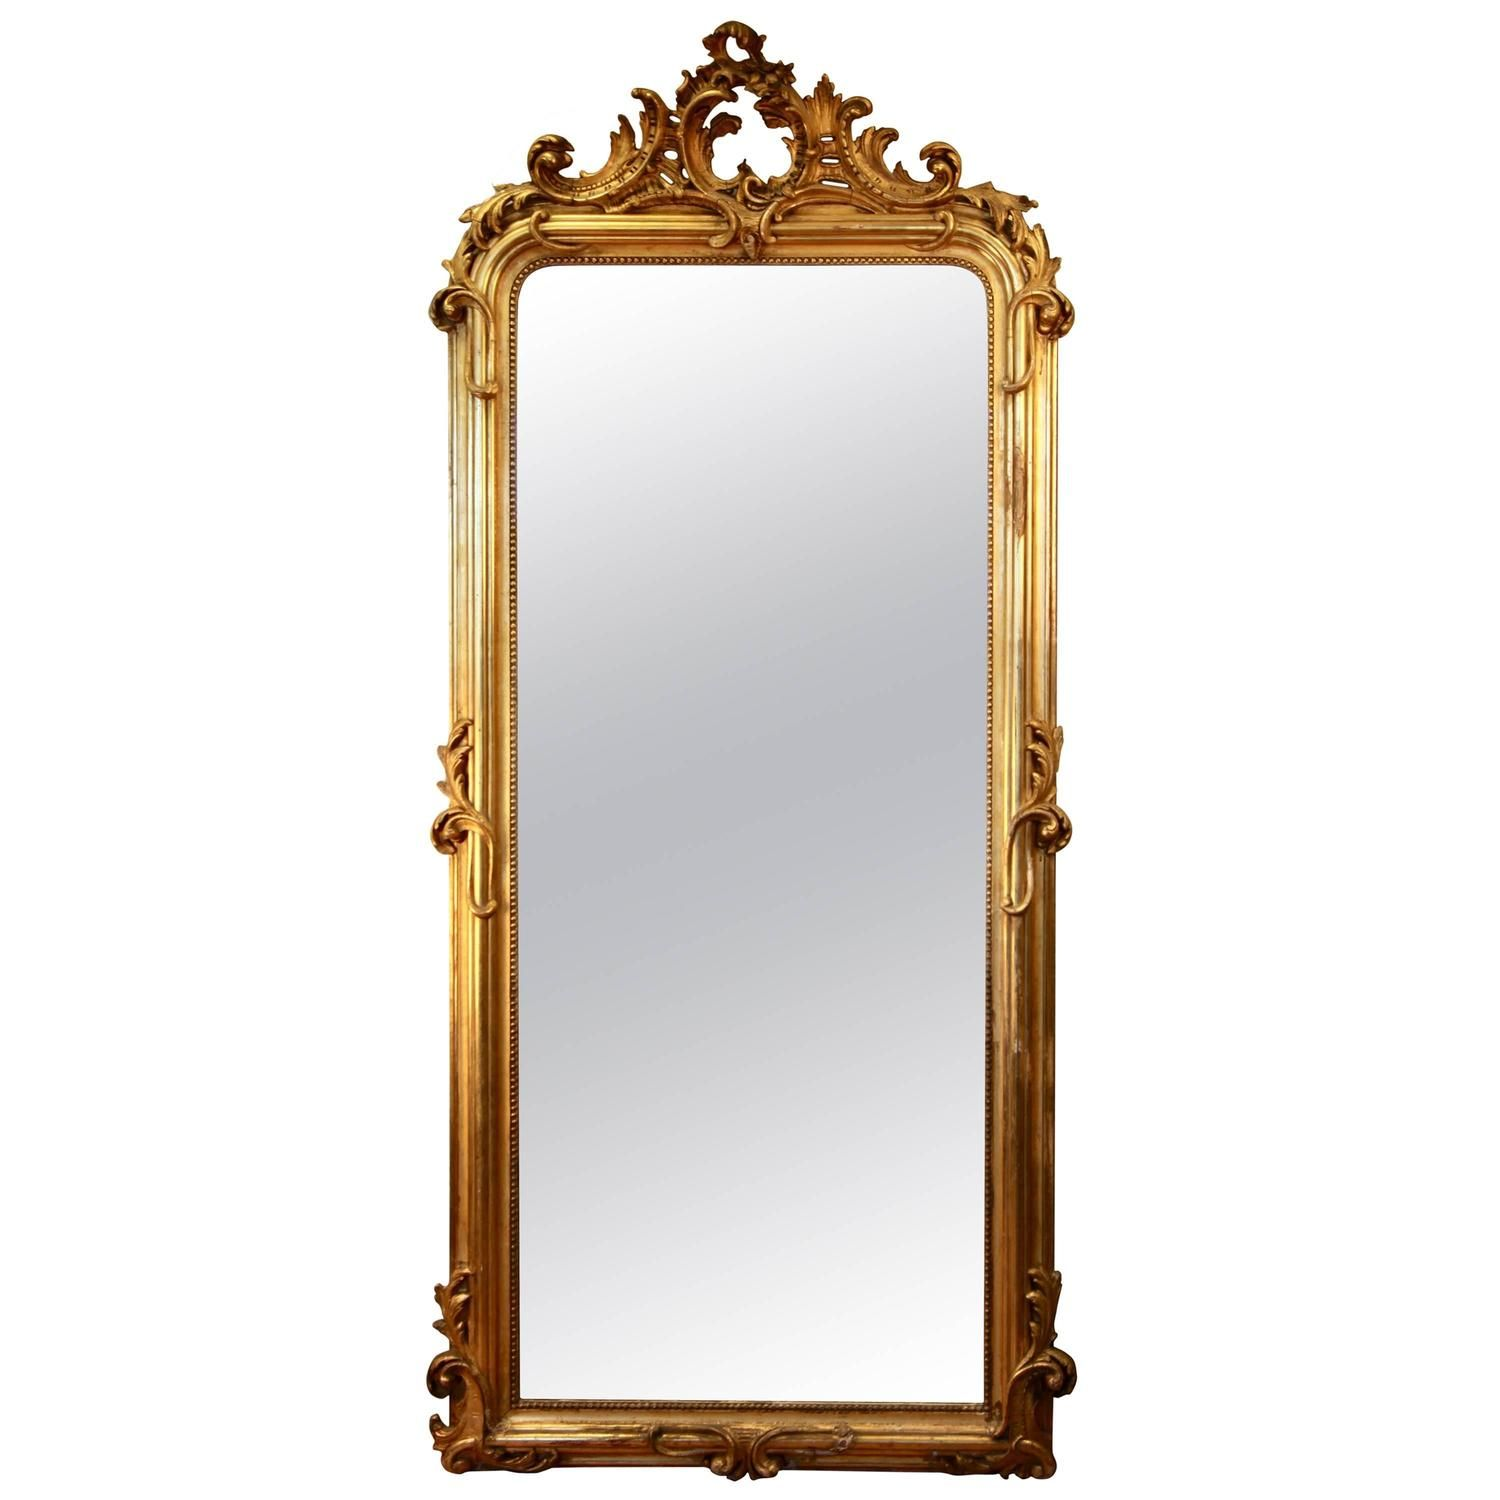 19th century gilded mirror see more antique and modern